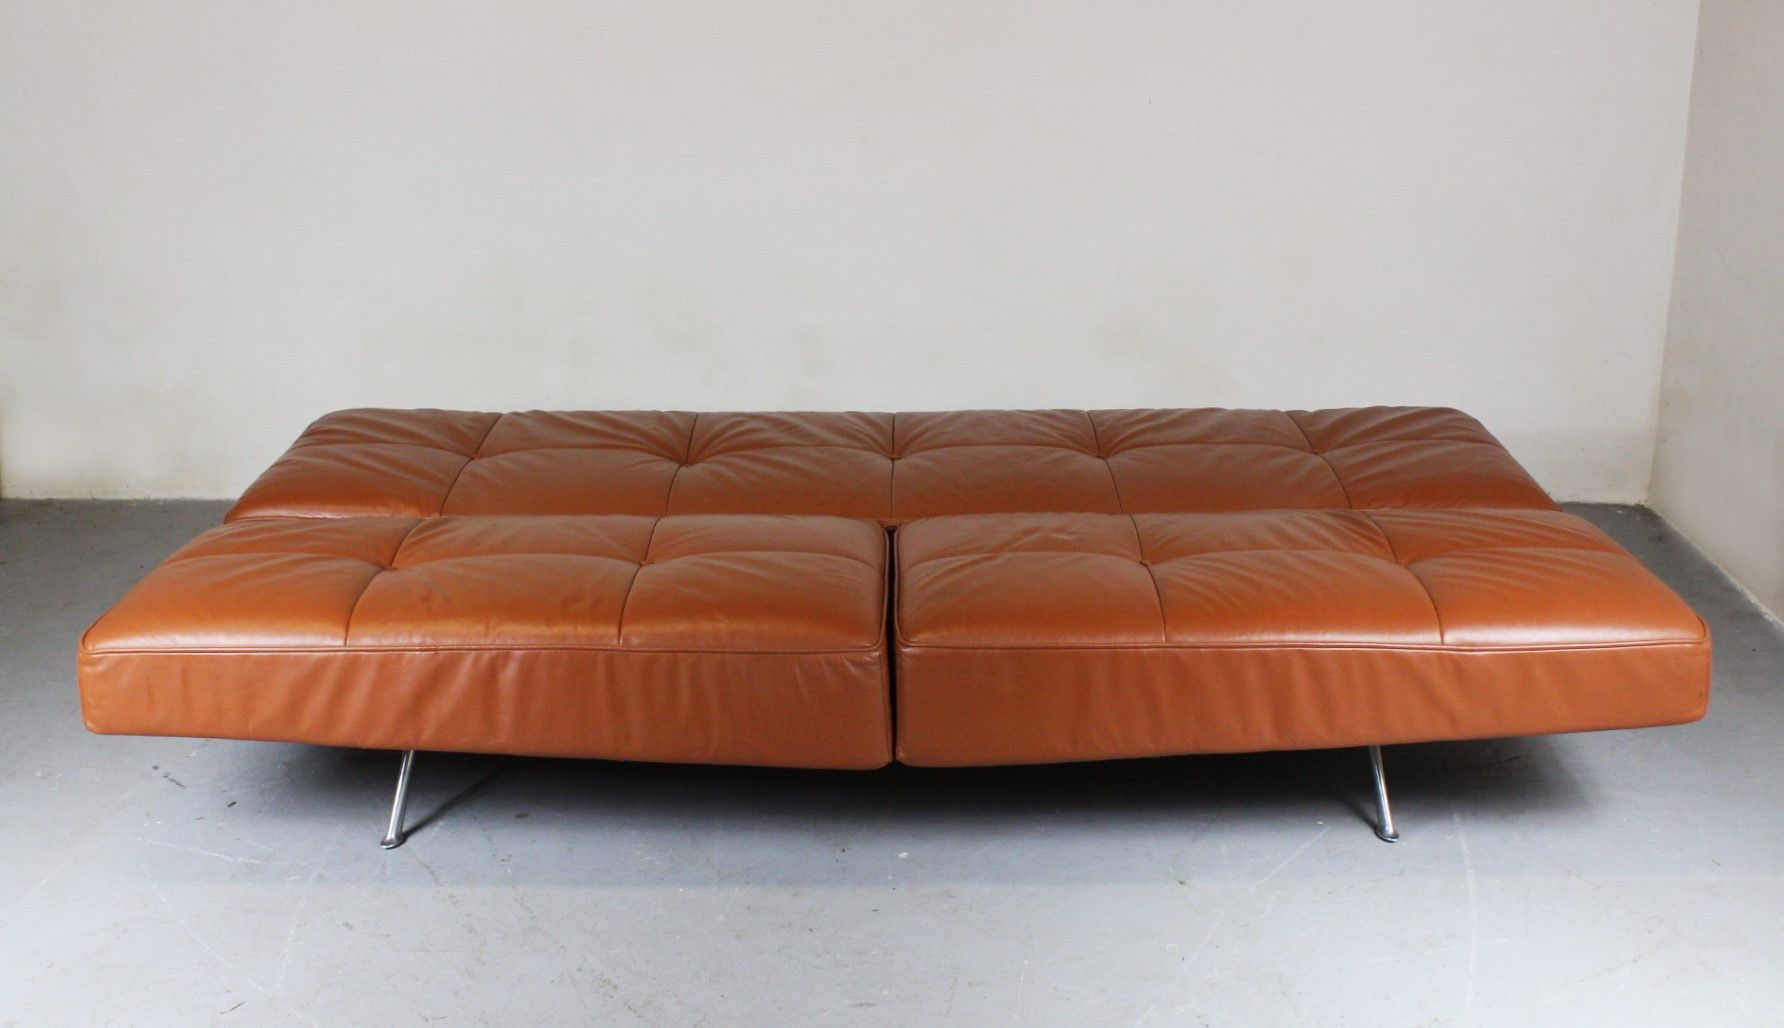 Ligne Roset Sofa Bed Multy Ligne Roset Sofa Bed Milia Thesofa